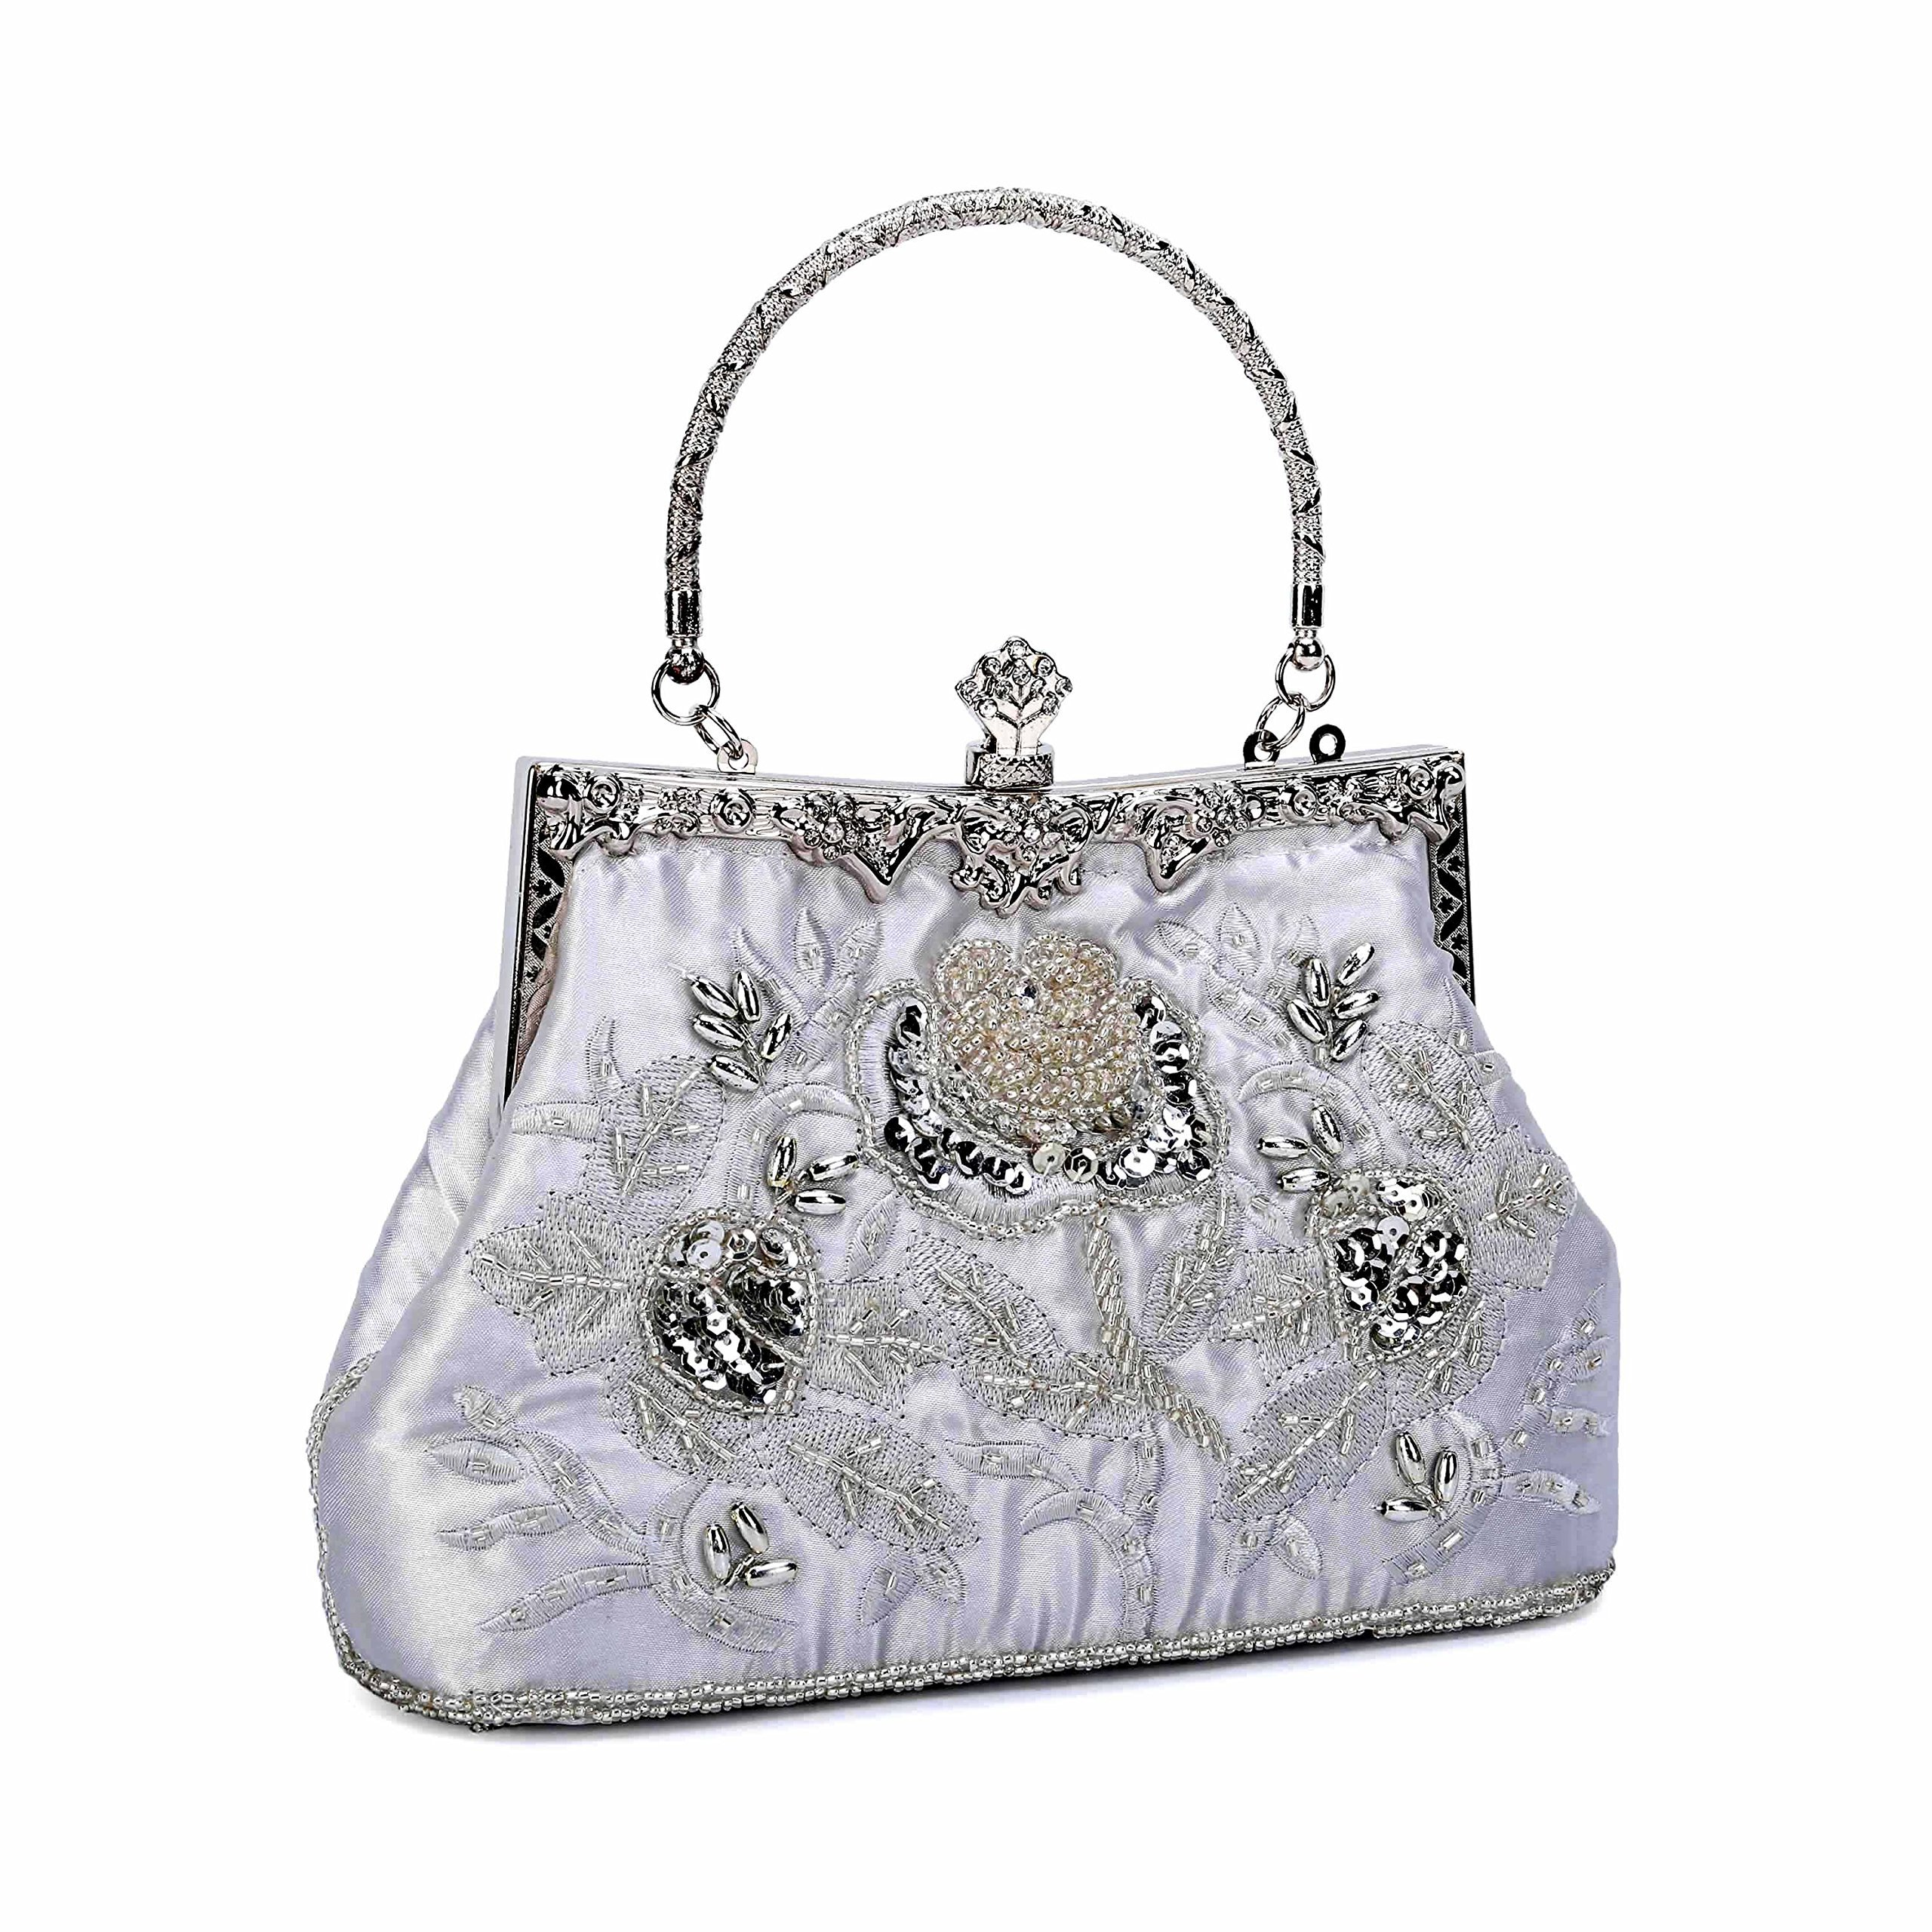 Asien Women's Vintage Style Roses Embroidered Beaded Sequin Evening Bags Wedding Party Clutch Purse (Silver)